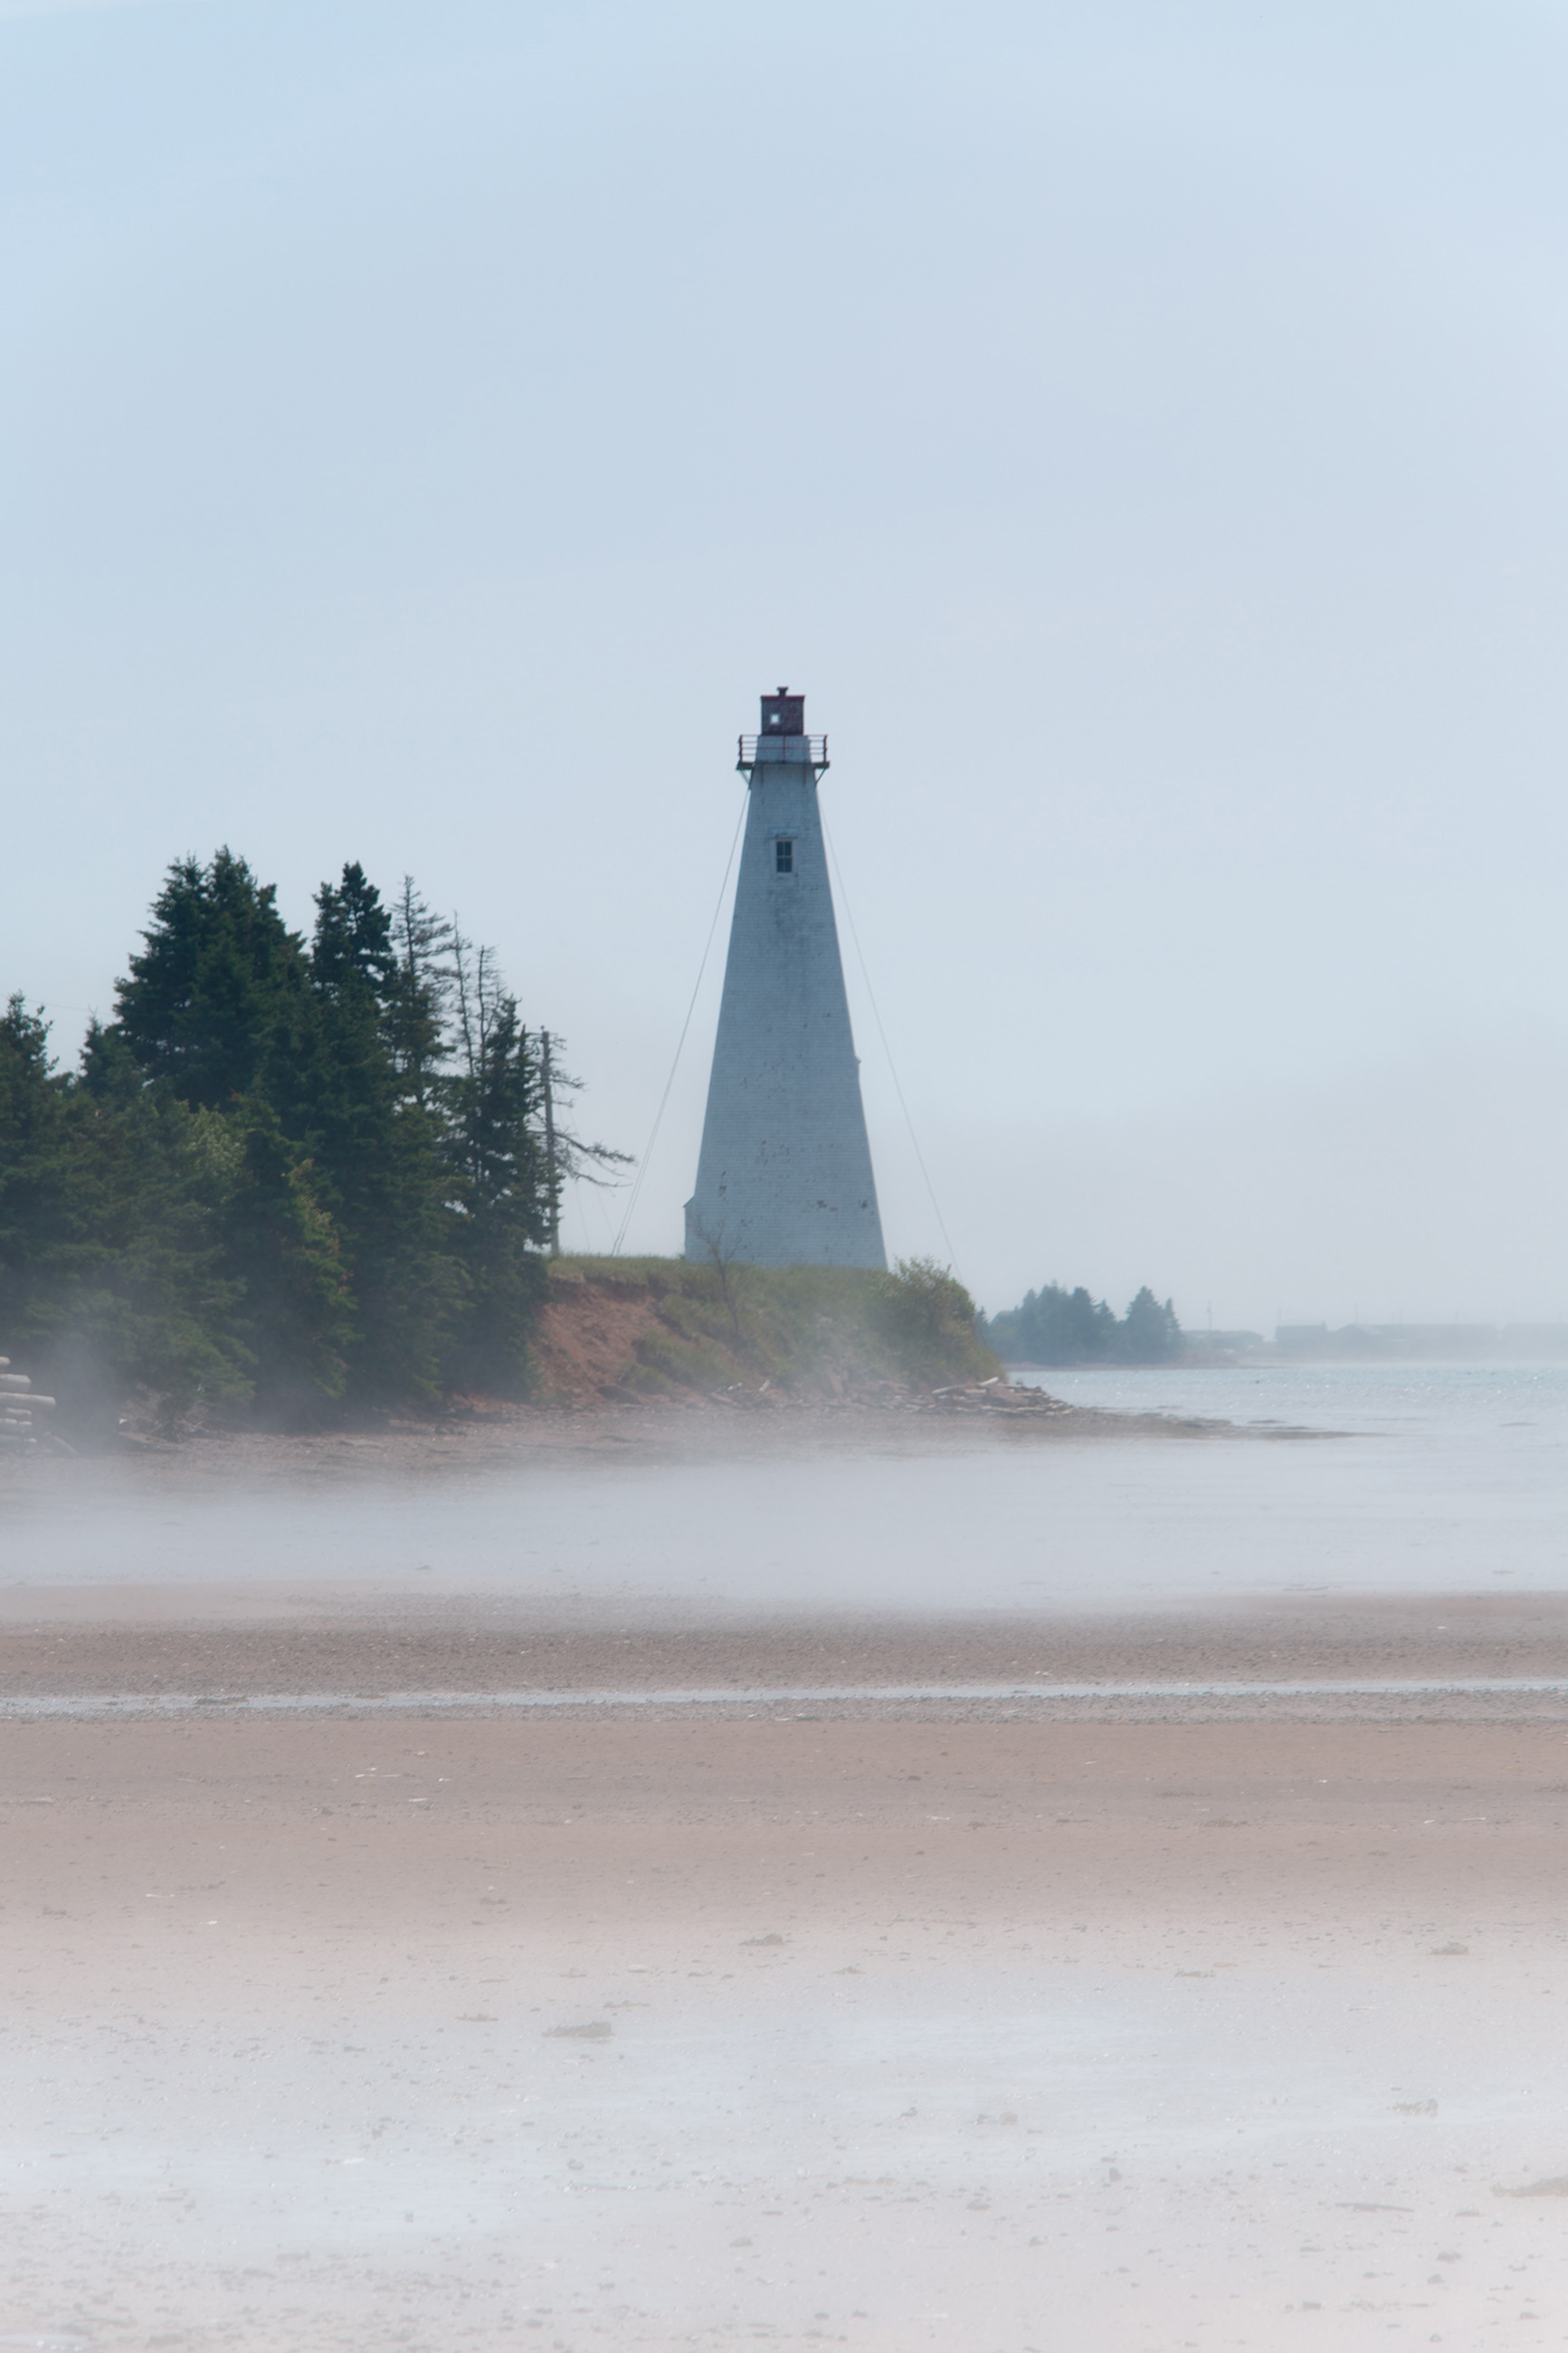 Lighthouse, Atlantic, Shore, Seashore, Seascape, HQ Photo